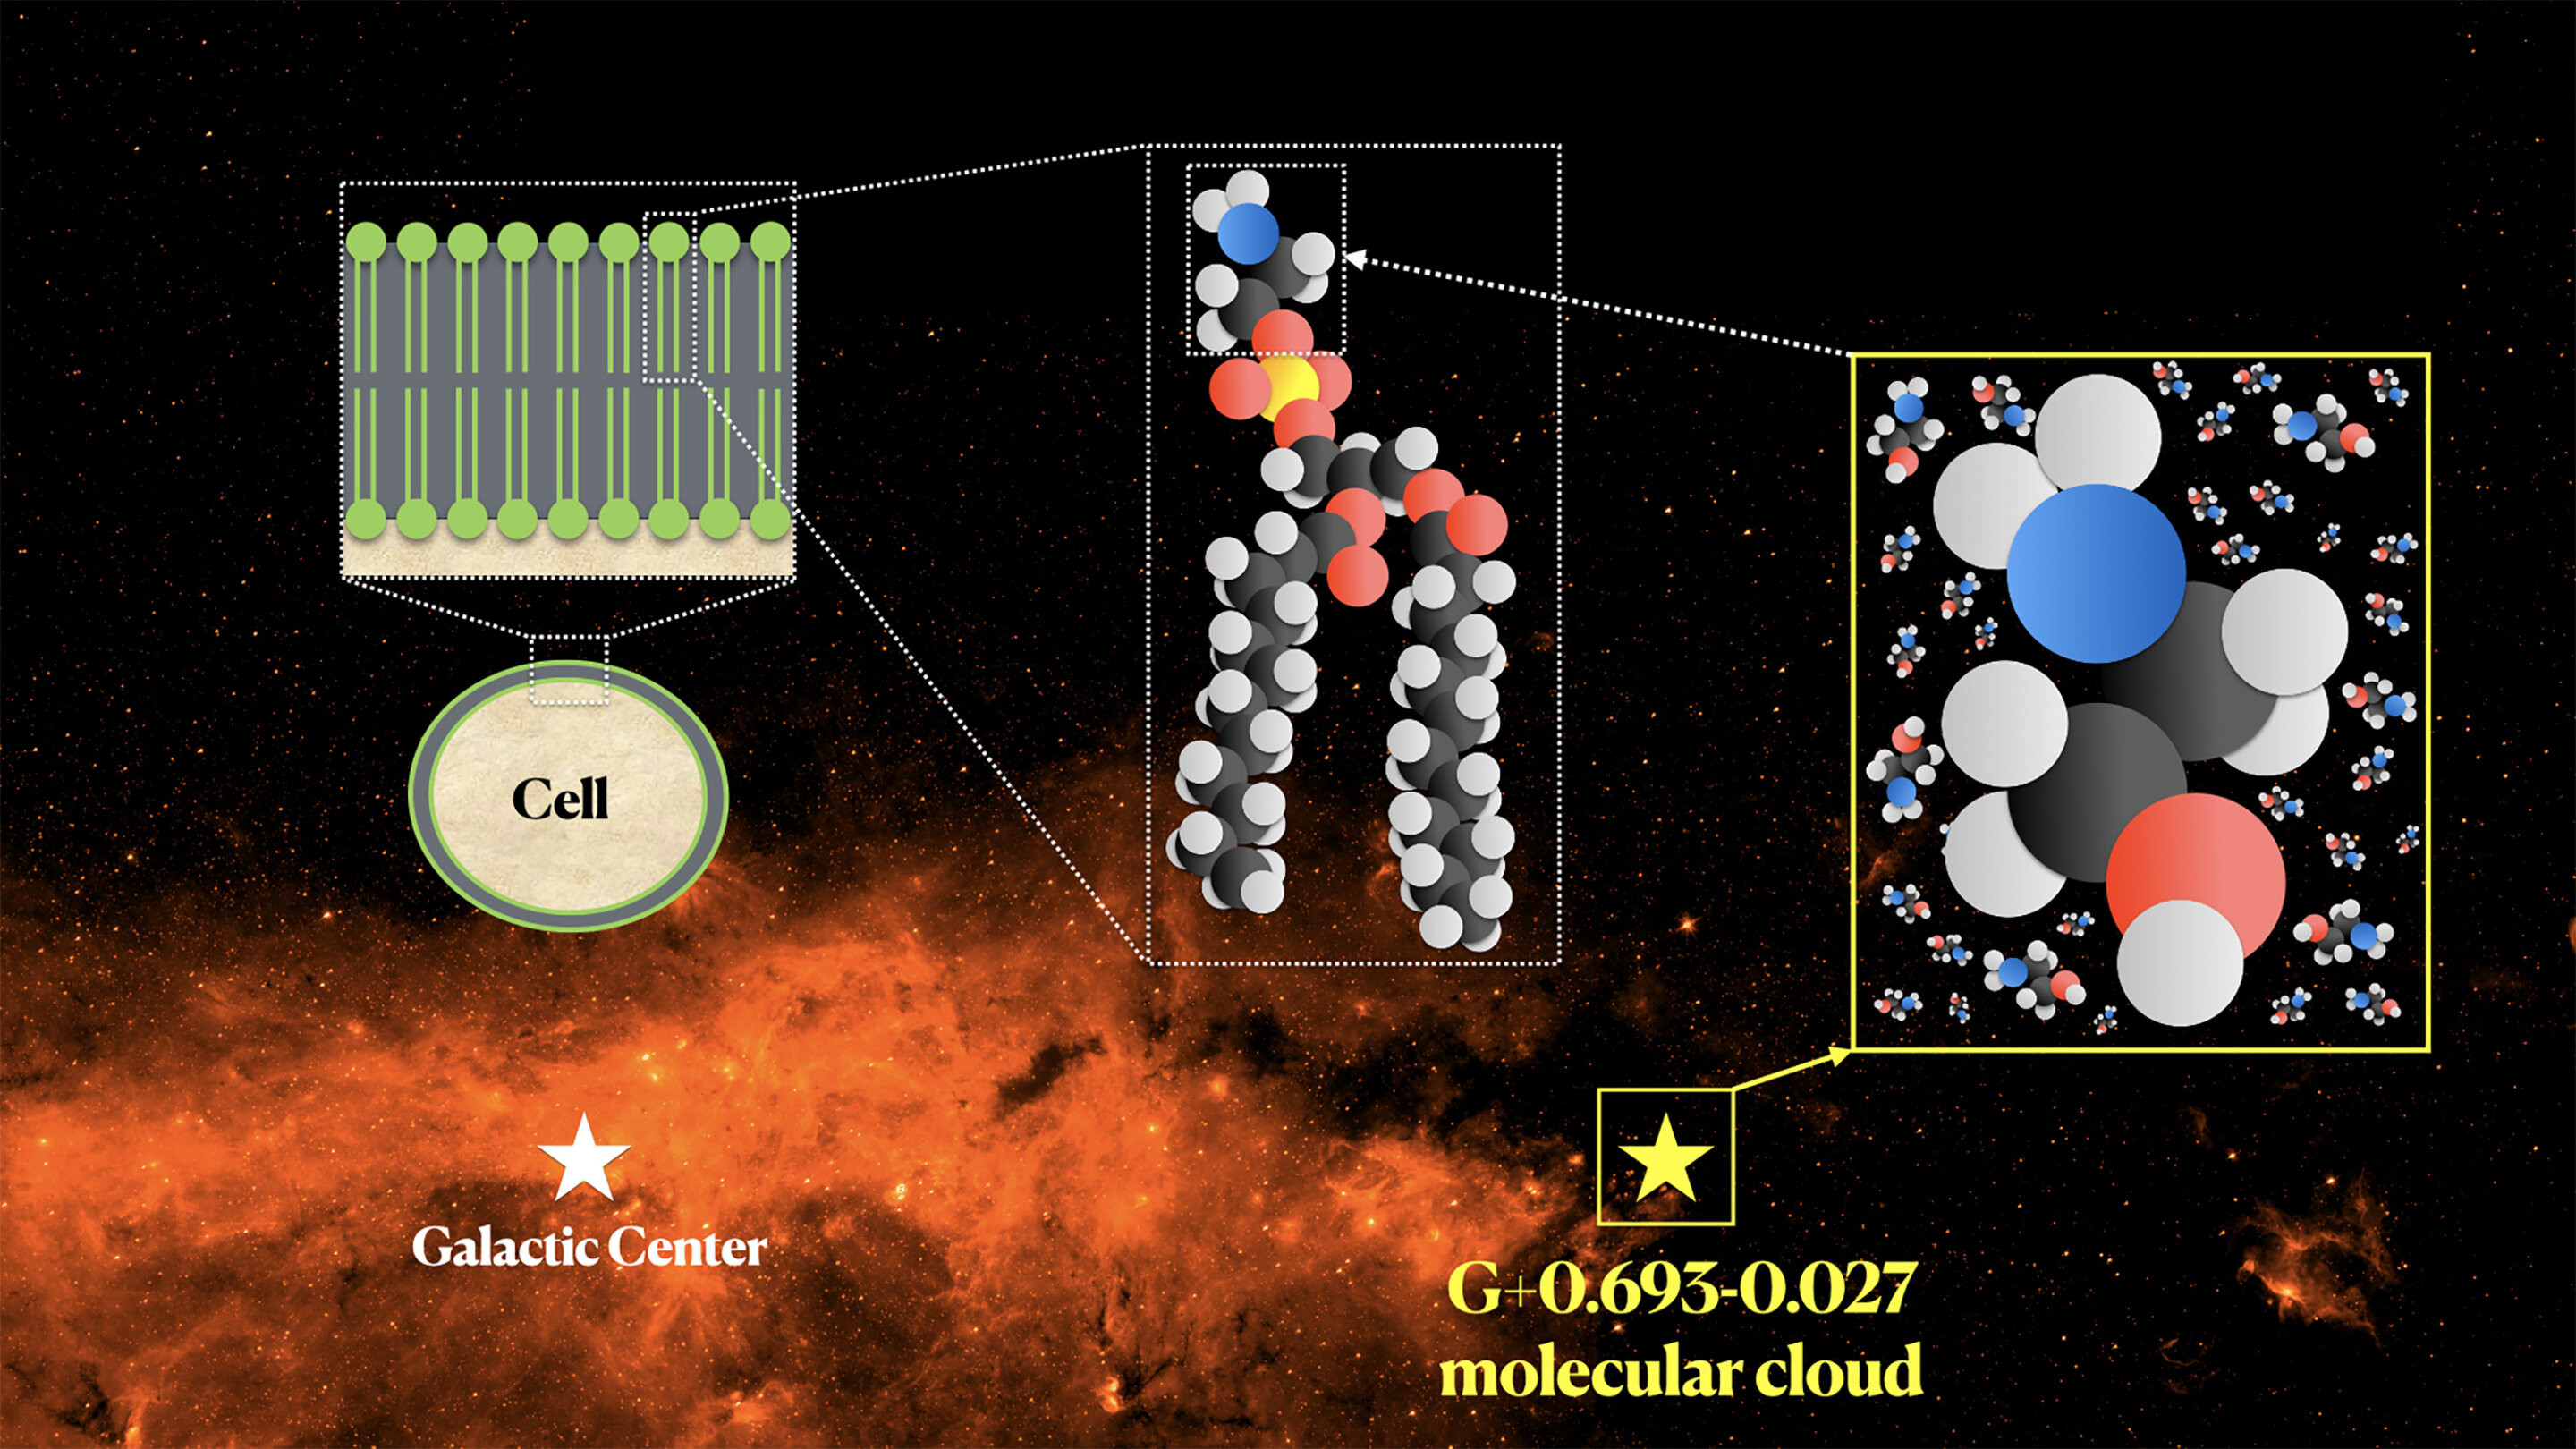 Prebiotic ethanolamine found in a molecular cloud near the center of the Milky Way